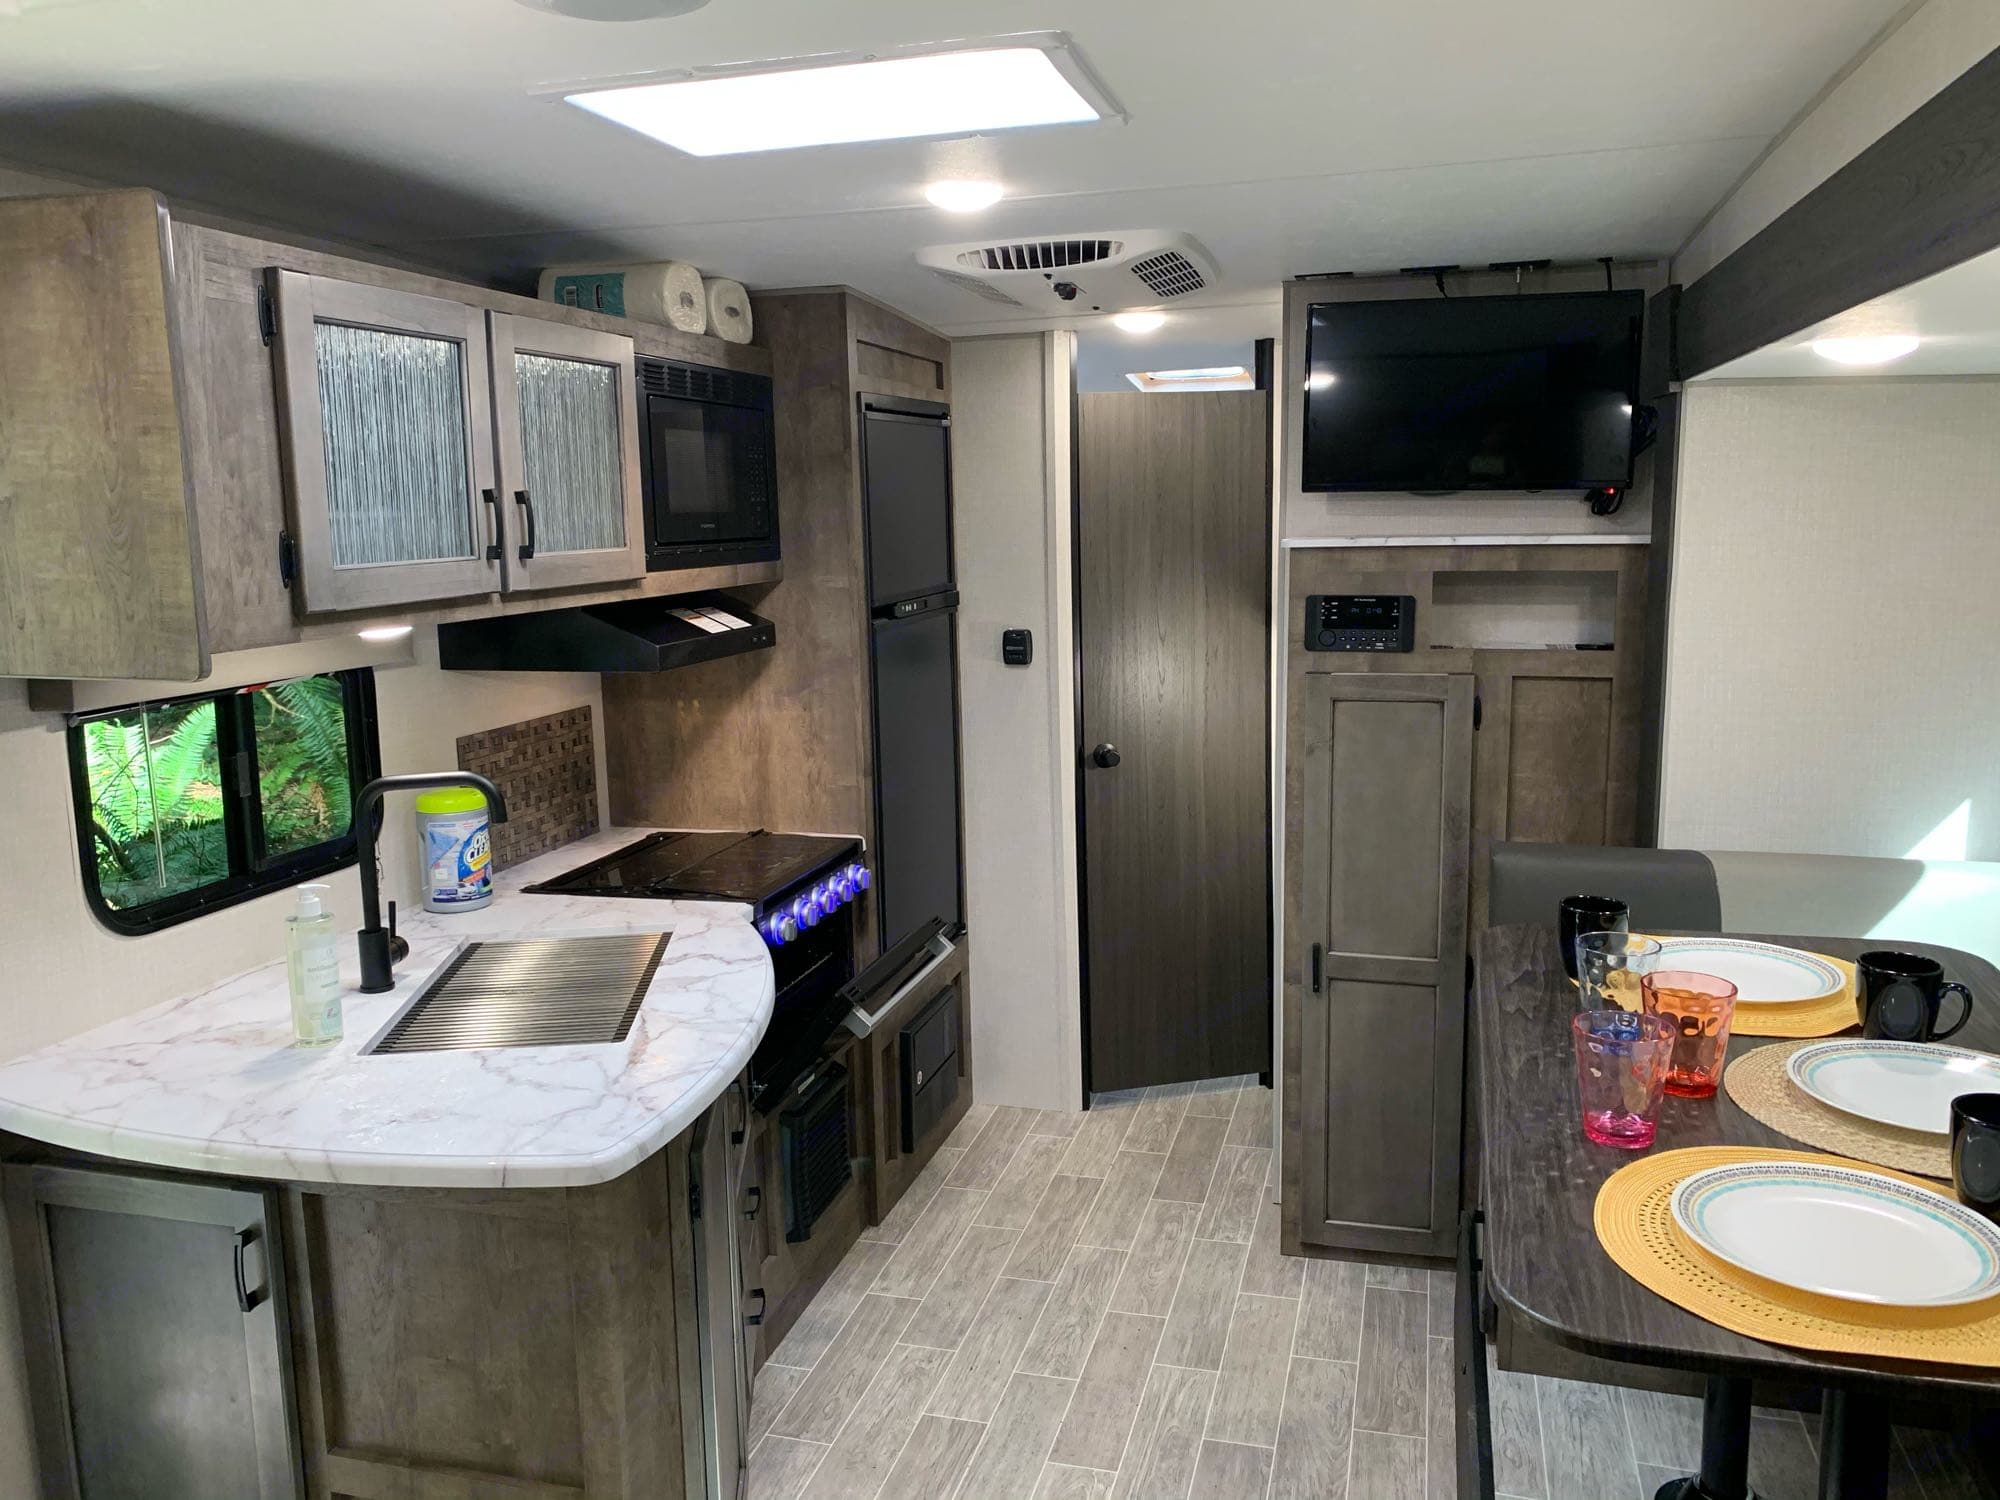 3 burner stove, oven and microwave. 8cf fridge. Large stainless sink.. Venture Rv Sonic 2021